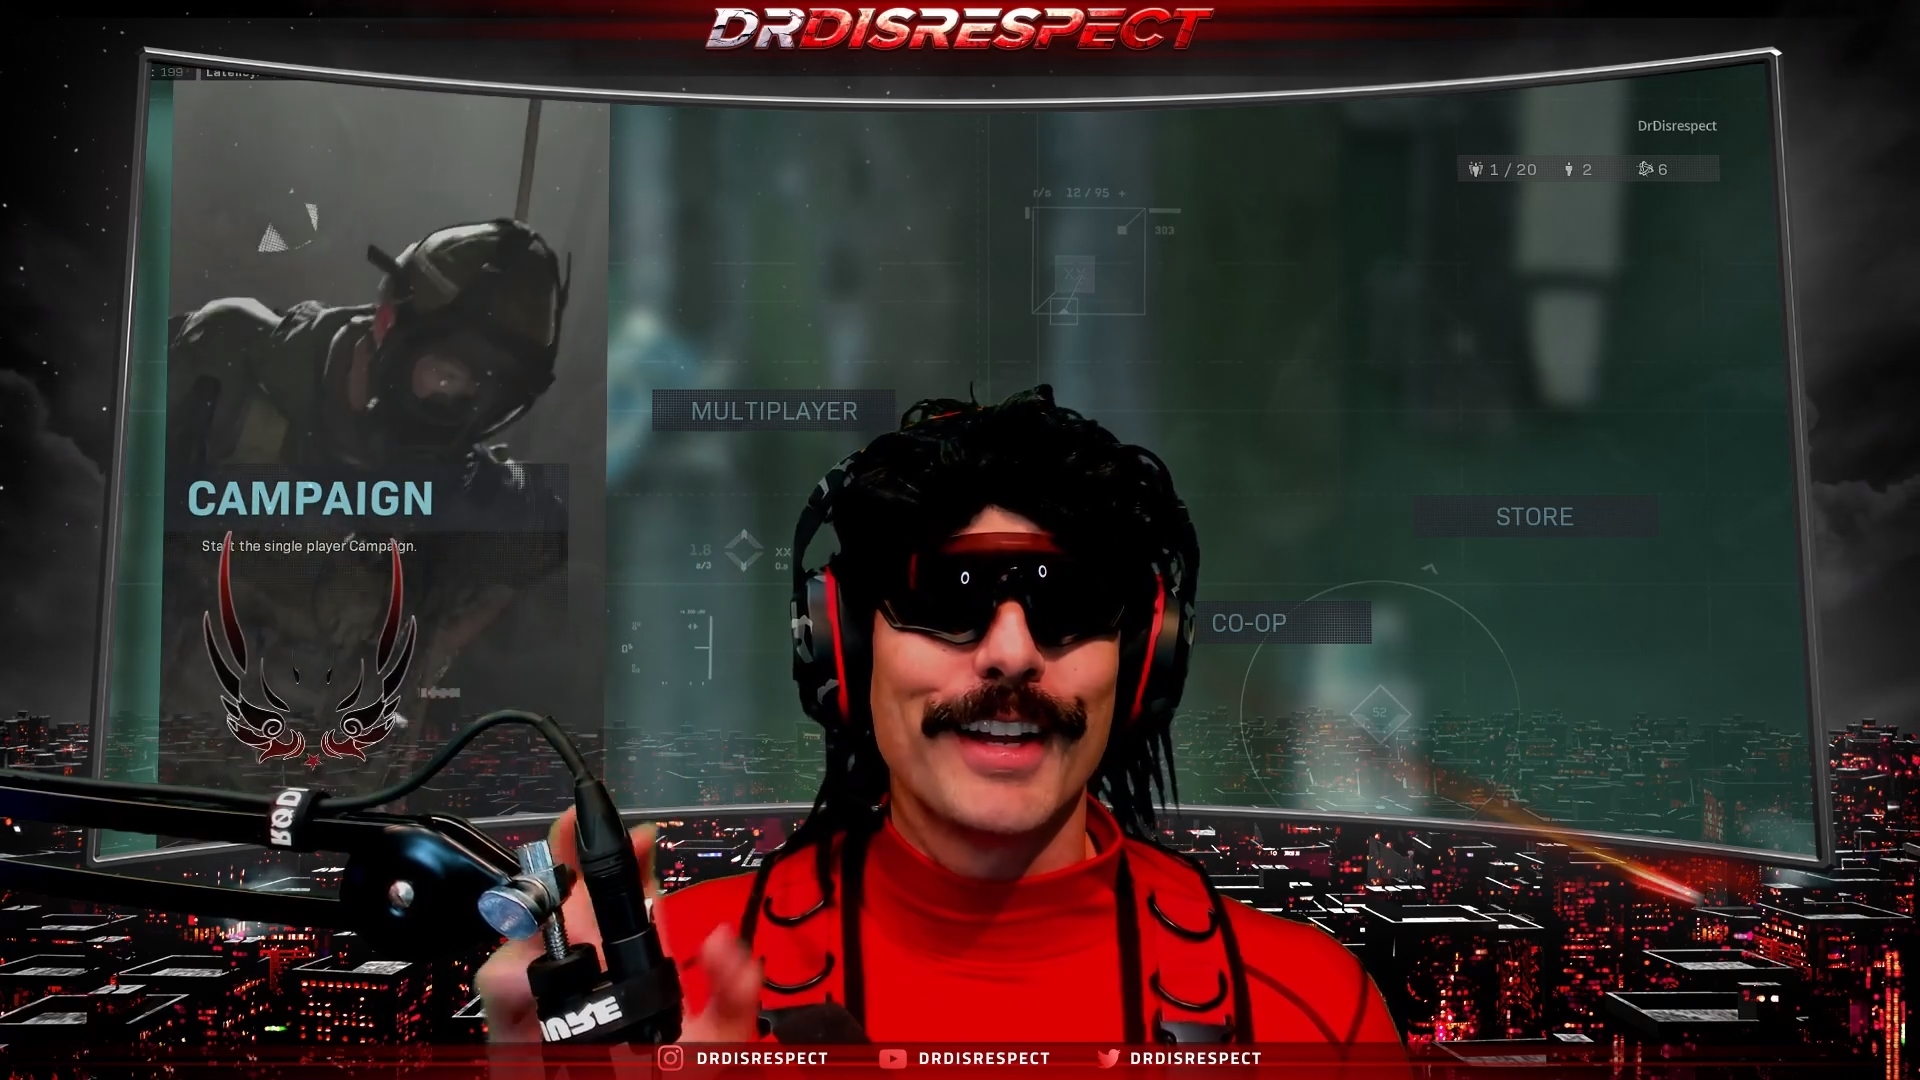 Dr Disrespect showcases his insane clutch ability in CS:GO